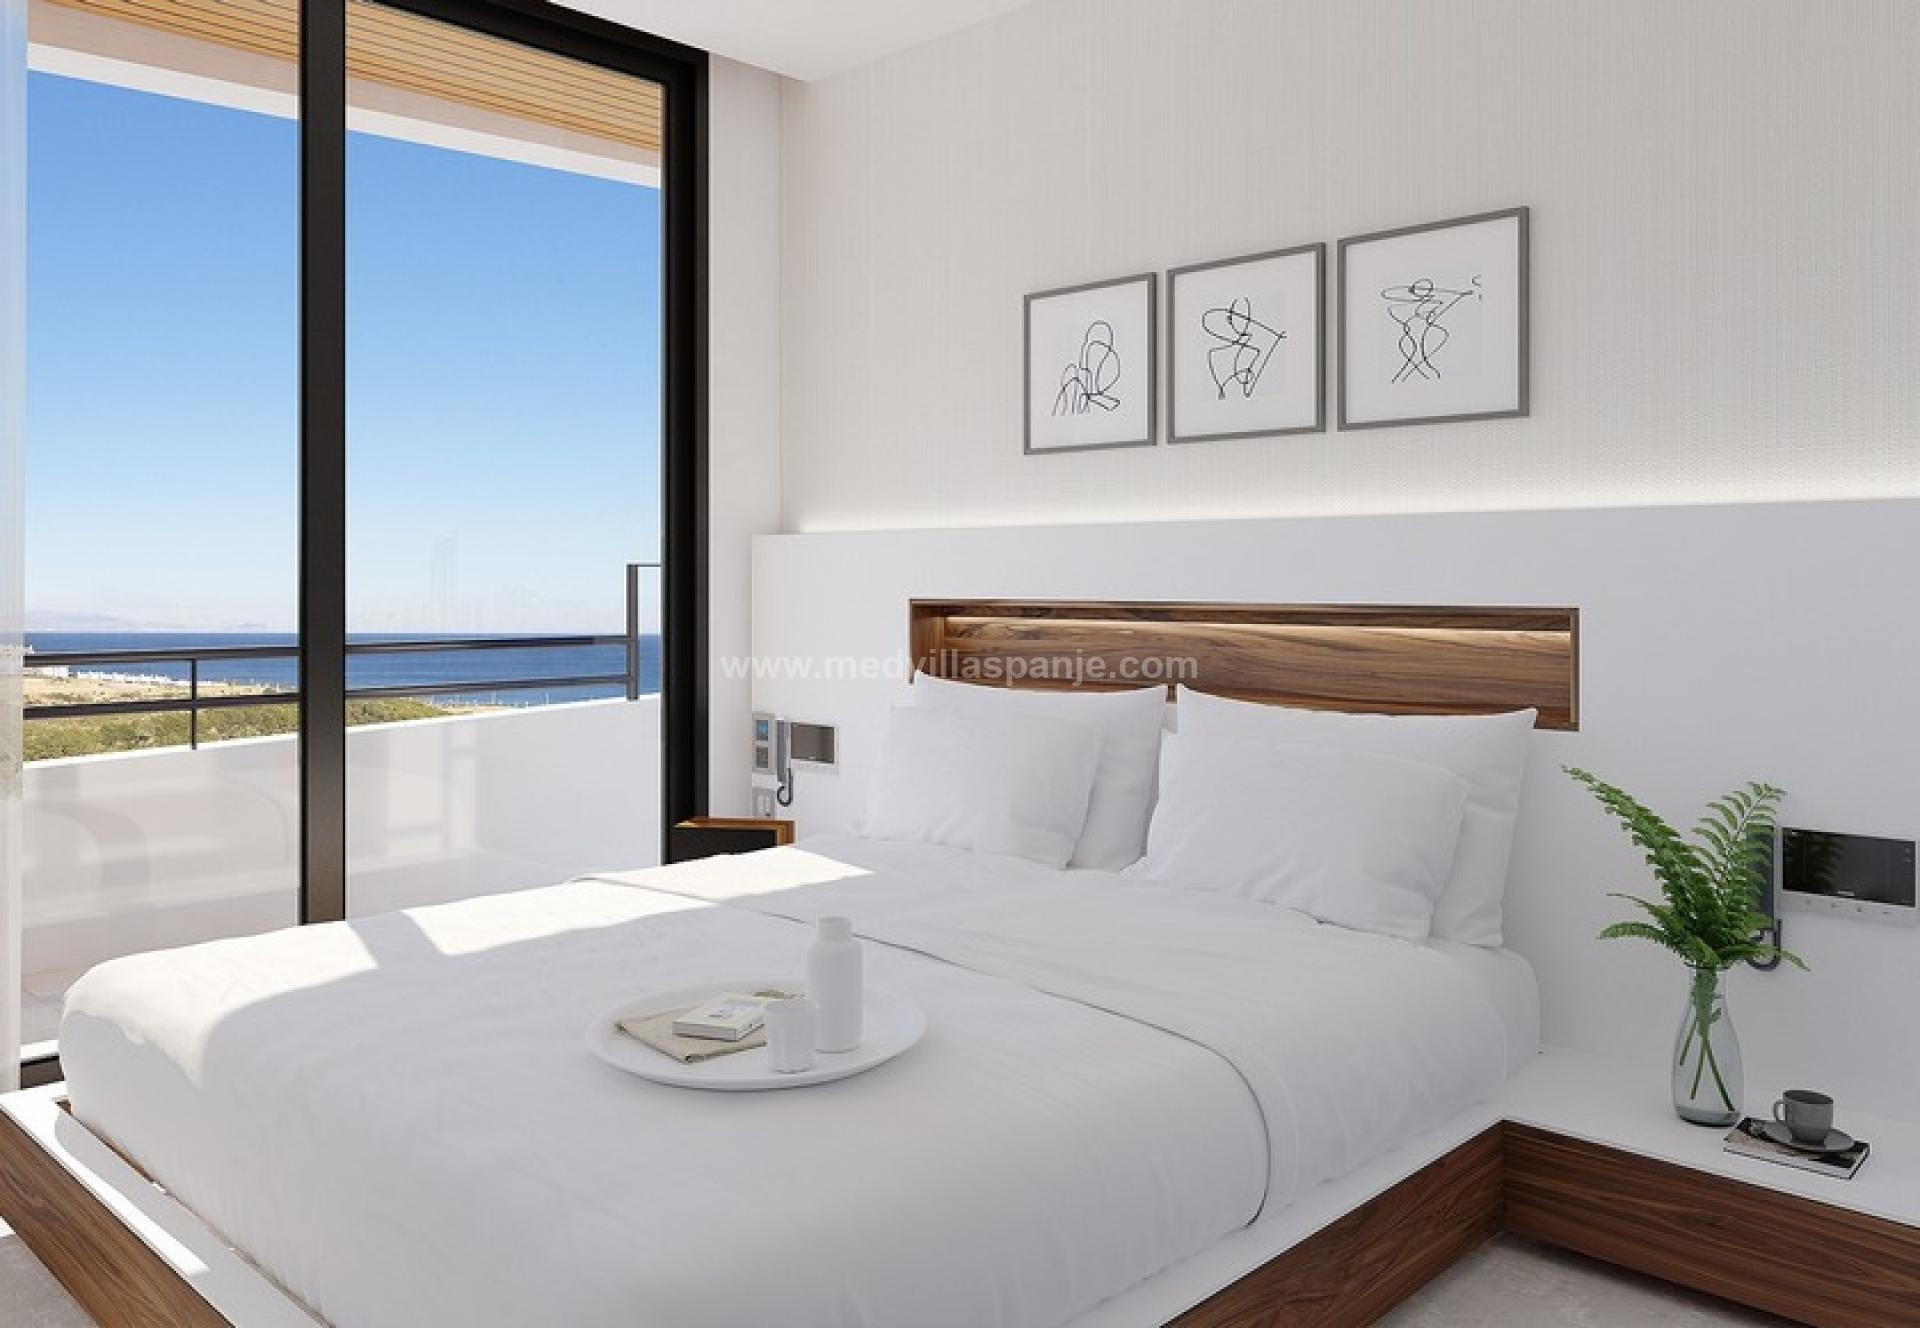 Apartments with sea and beach views of Gran Alacant in Medvilla Spanje